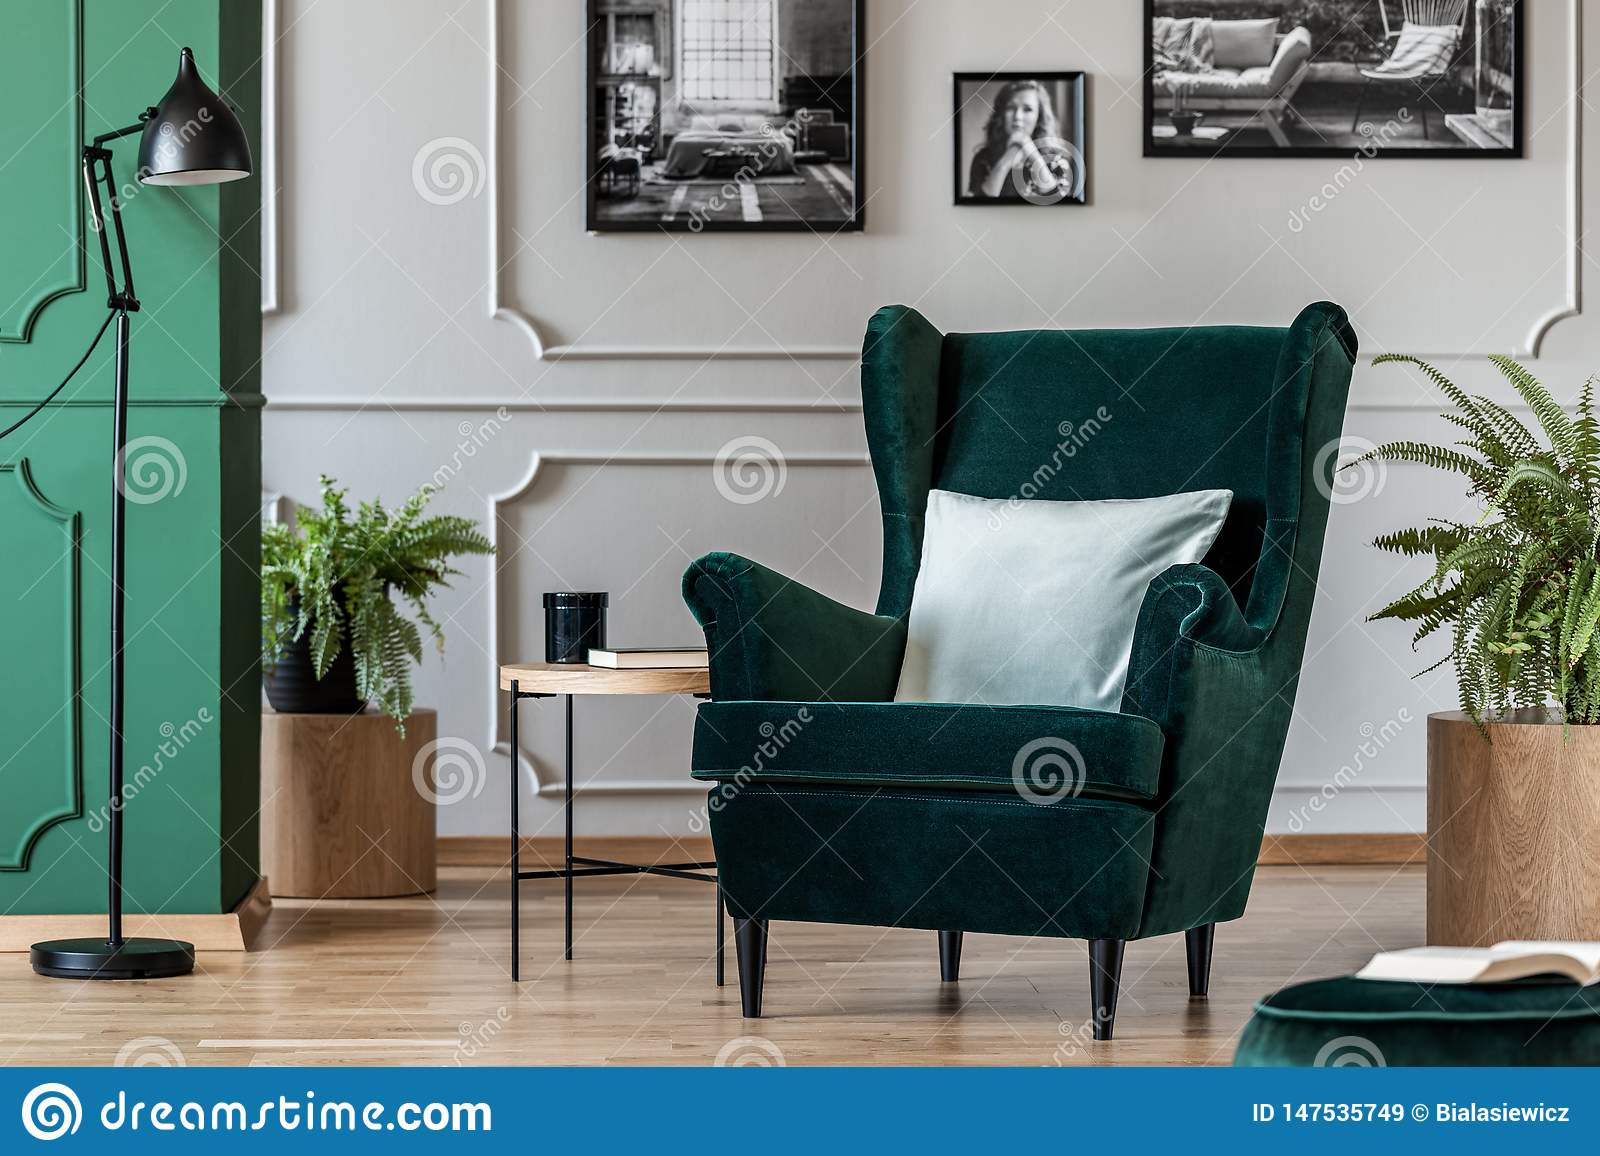 Pillow On Emerald Green Armchair In Elegant Living Room With